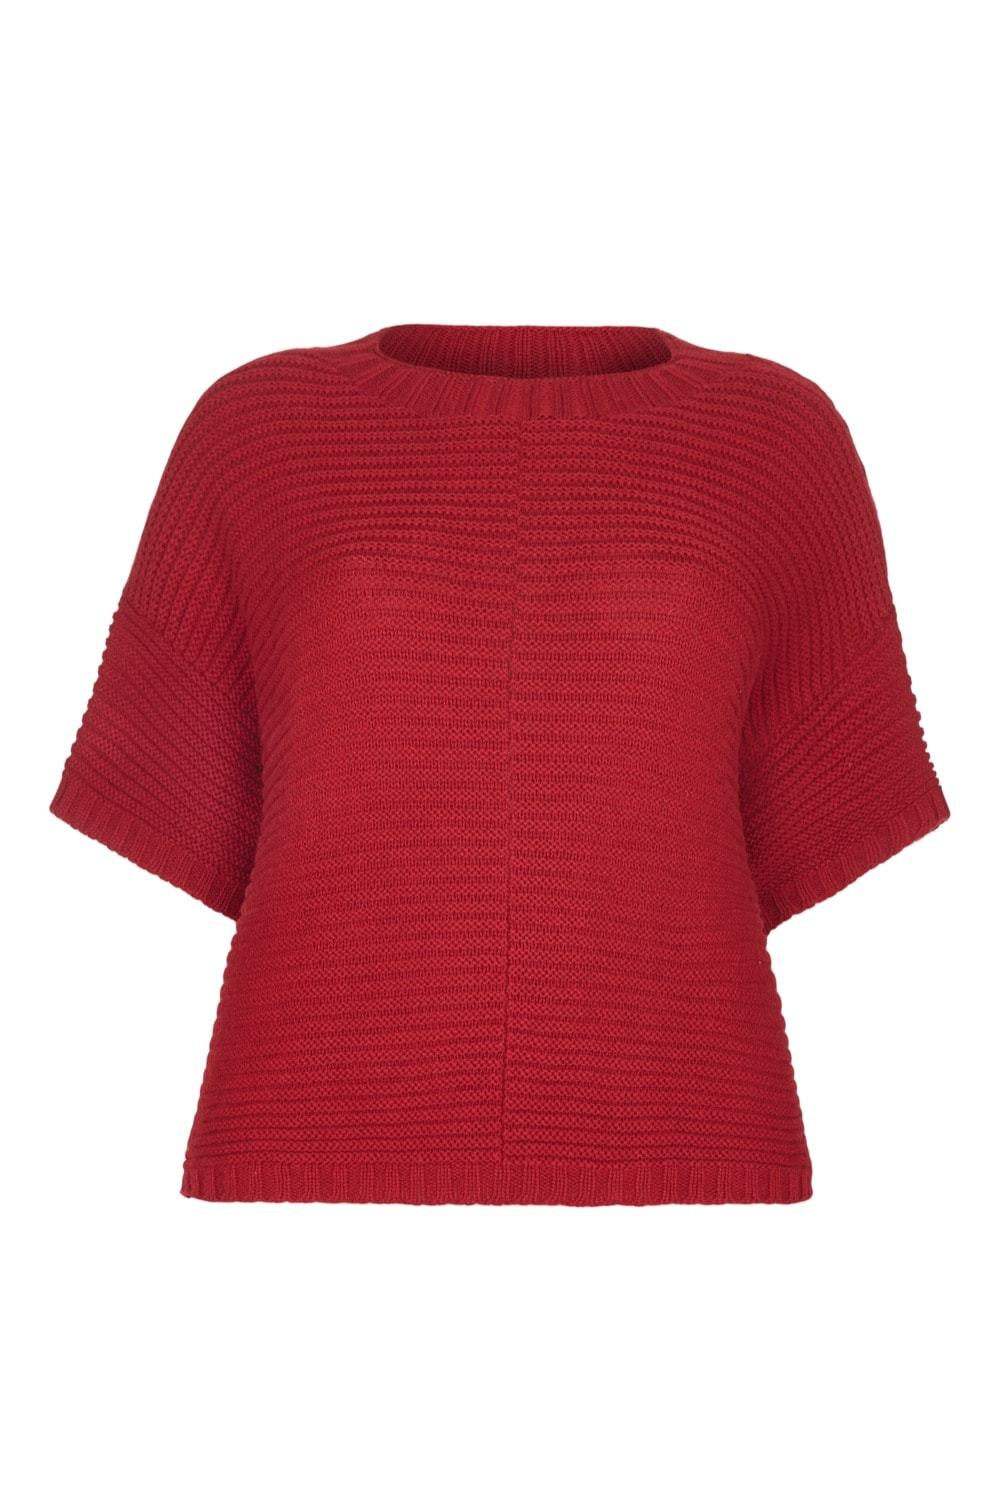 Poncho Jumper - Cashmere Merino CRADLE TO CRADLE® yarn, Red